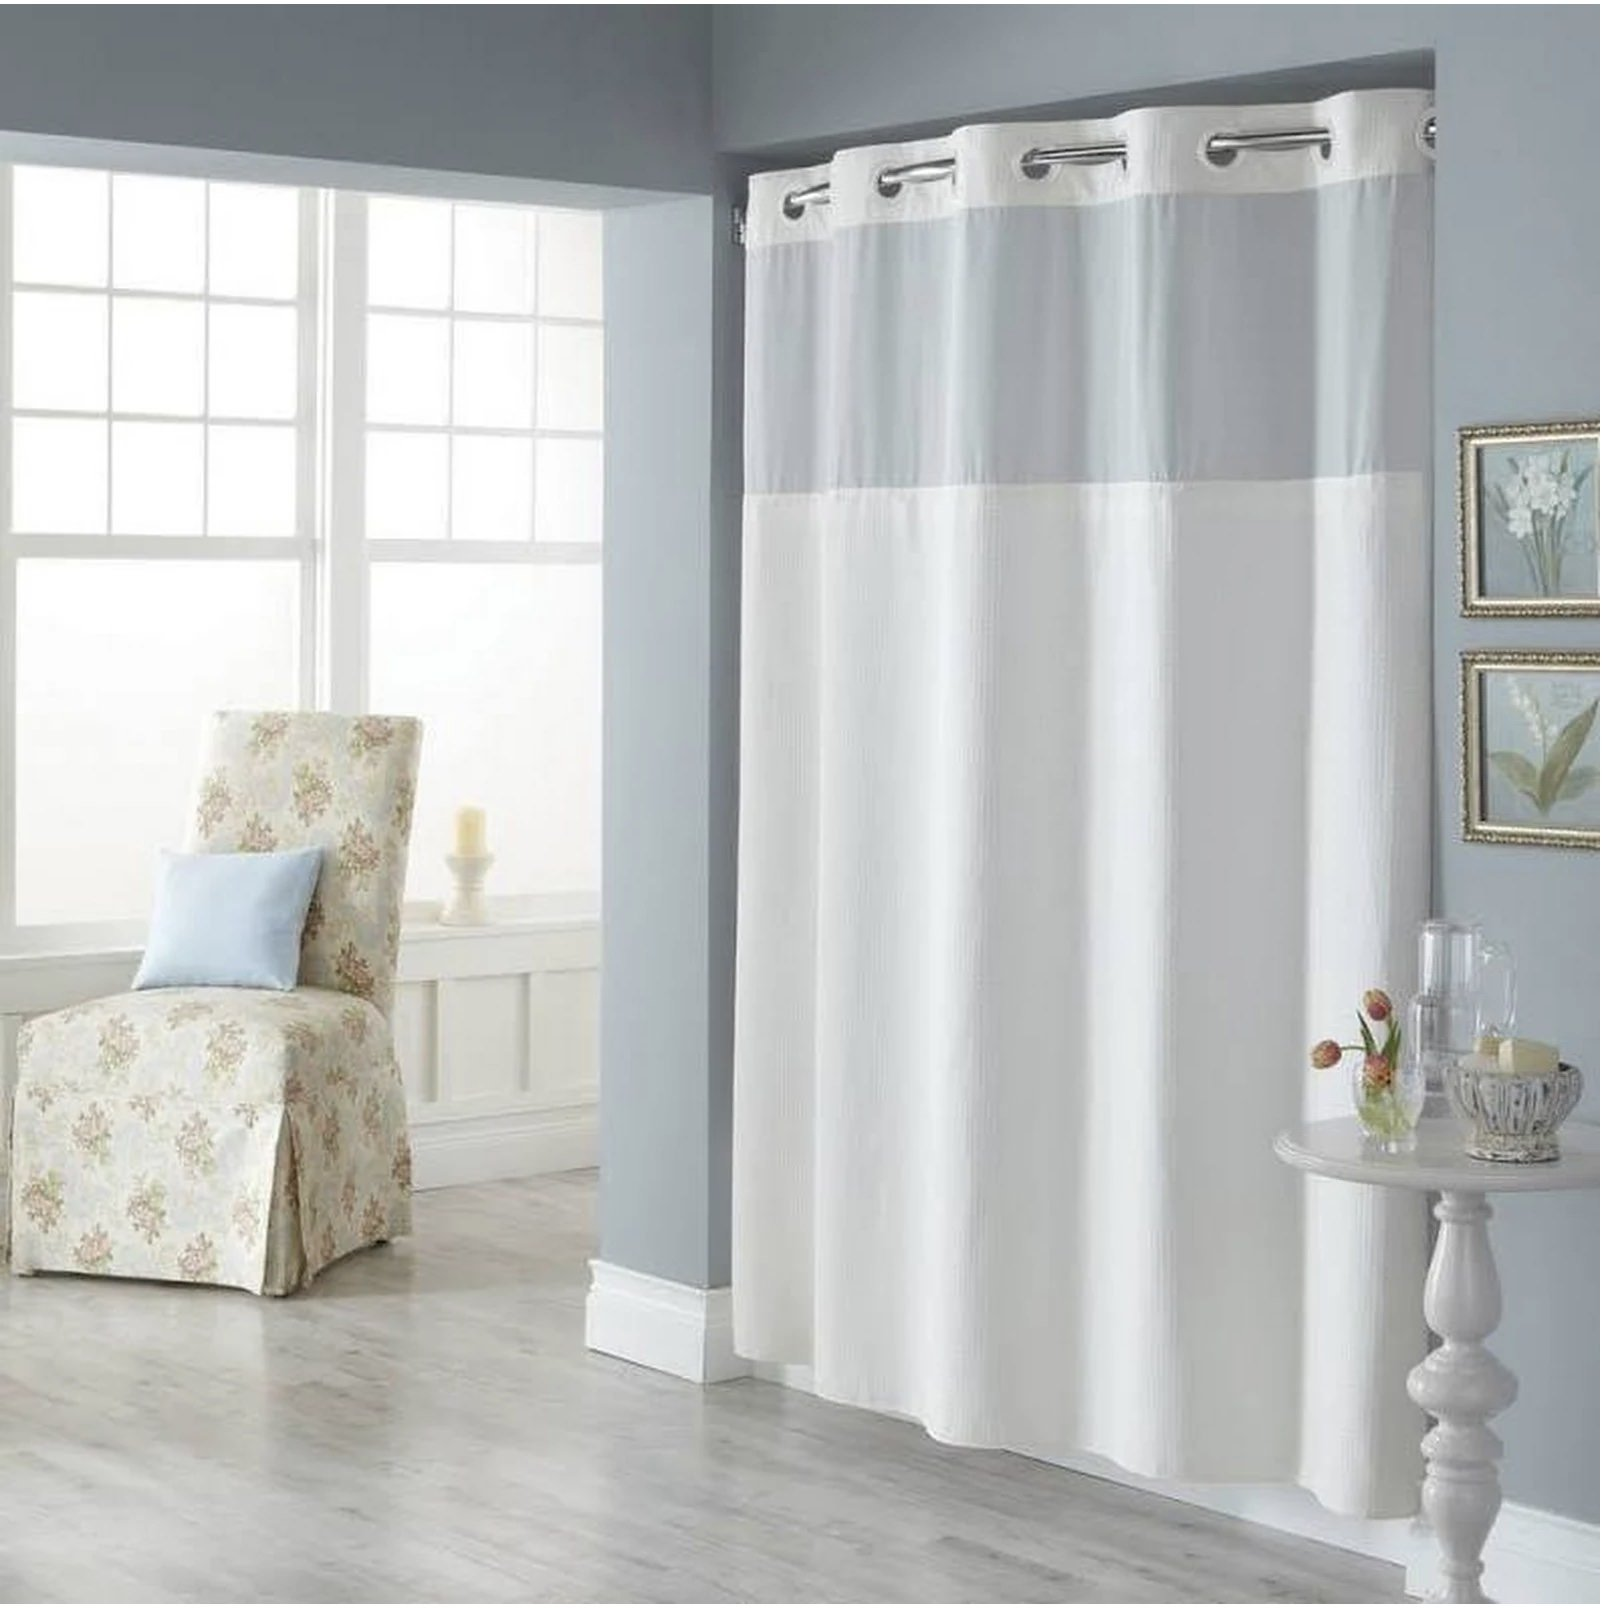 Trendy Linens Hookless Shower Curtain See Through Top Hotel Quality Polyester with Magnets, and Sheer Voile Peek-a-boo Window - 71'' x 77'', White Hookless Long Shower Curtain